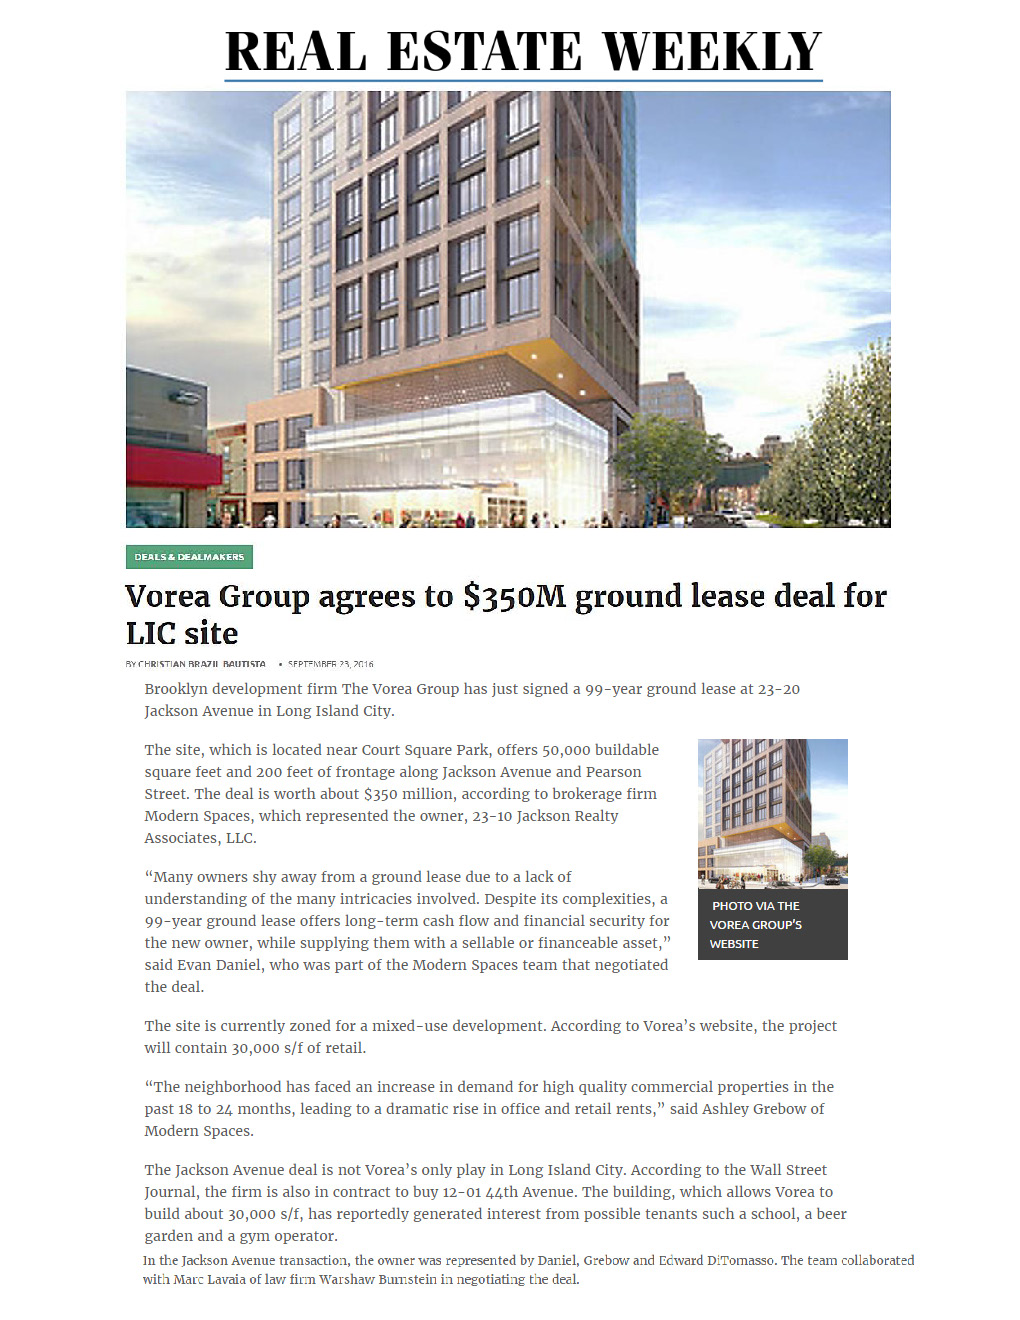 rew-com-vorea-group-agrees-to-350m-ground-lease-deal-for-lic-site-9-23-16